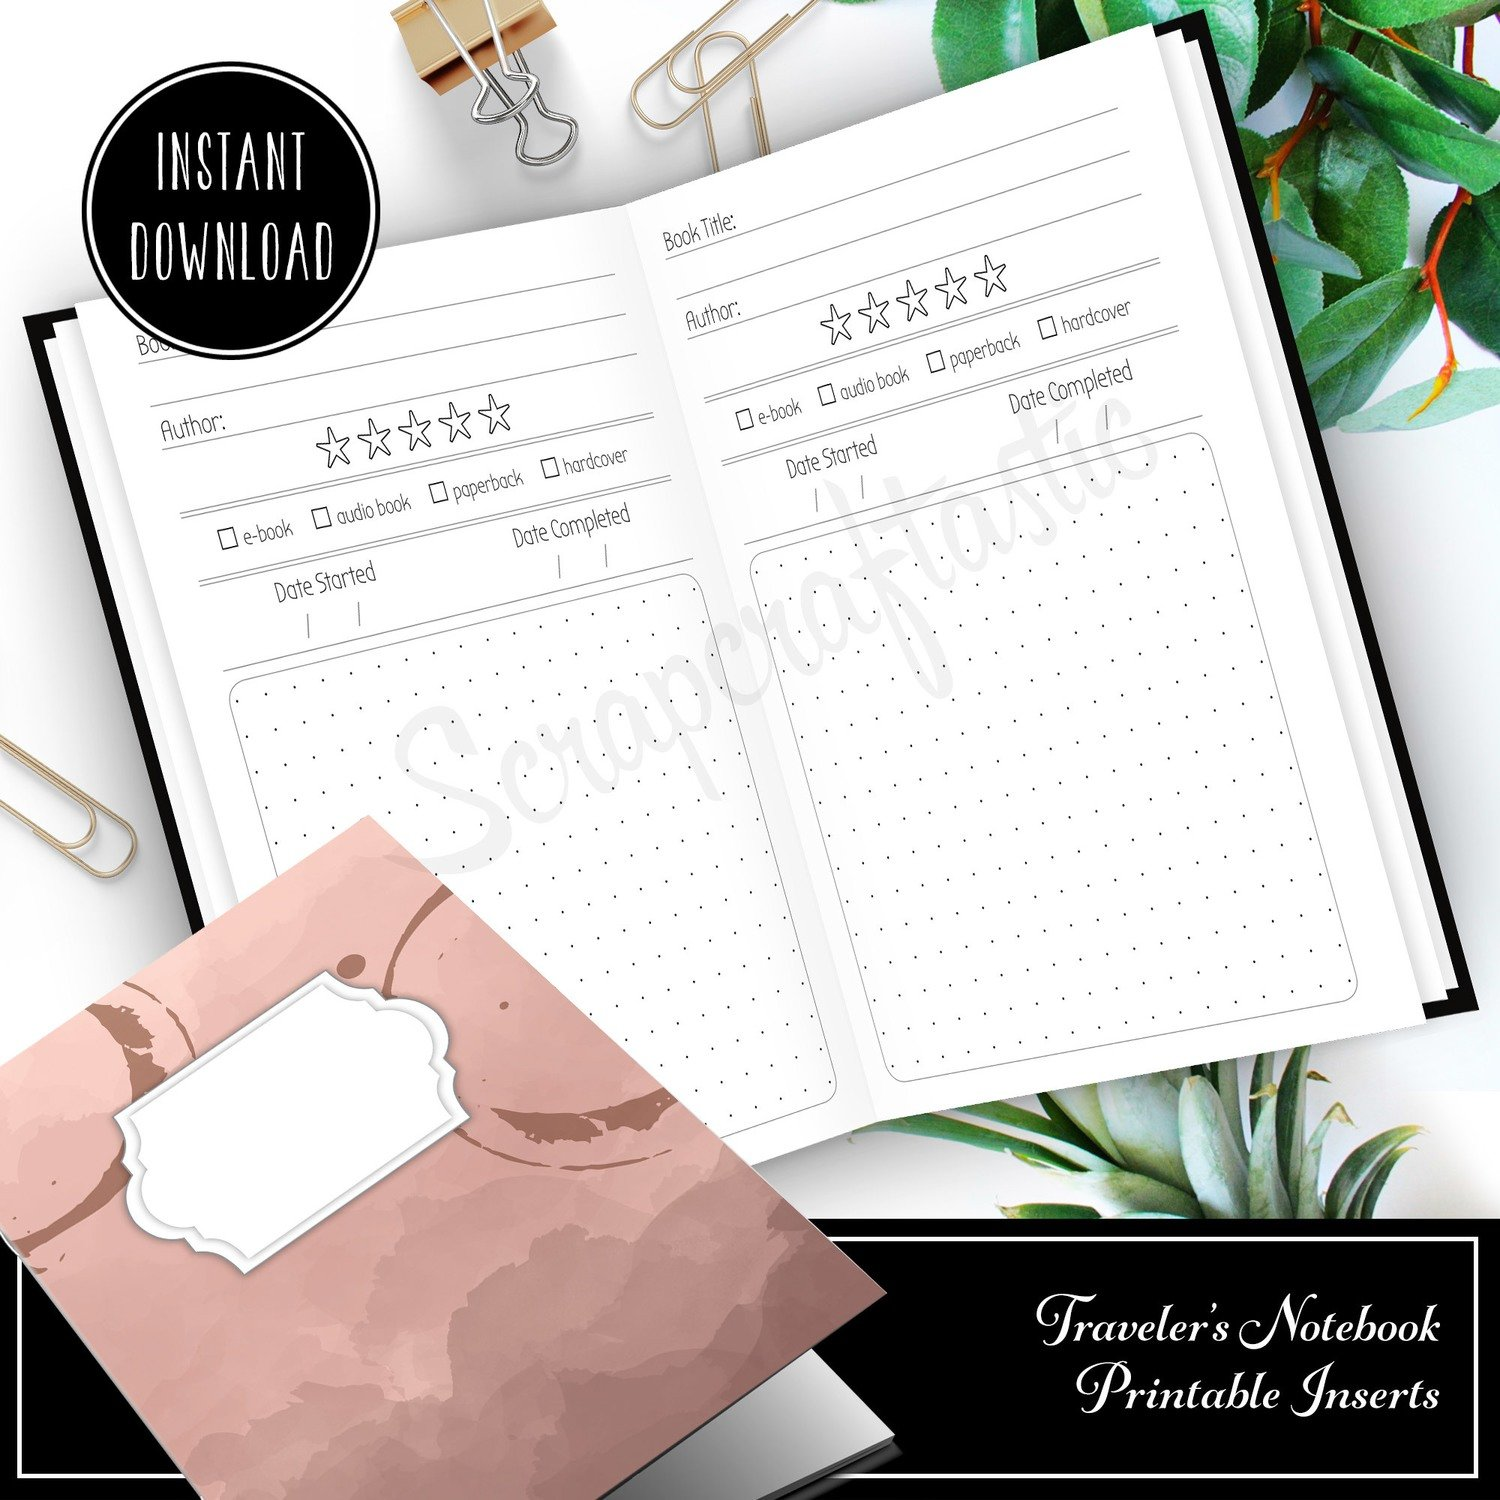 STANDARD TN - Book / Reading Log and Review Standard/Regular Traveler's Notebook Printable Insert